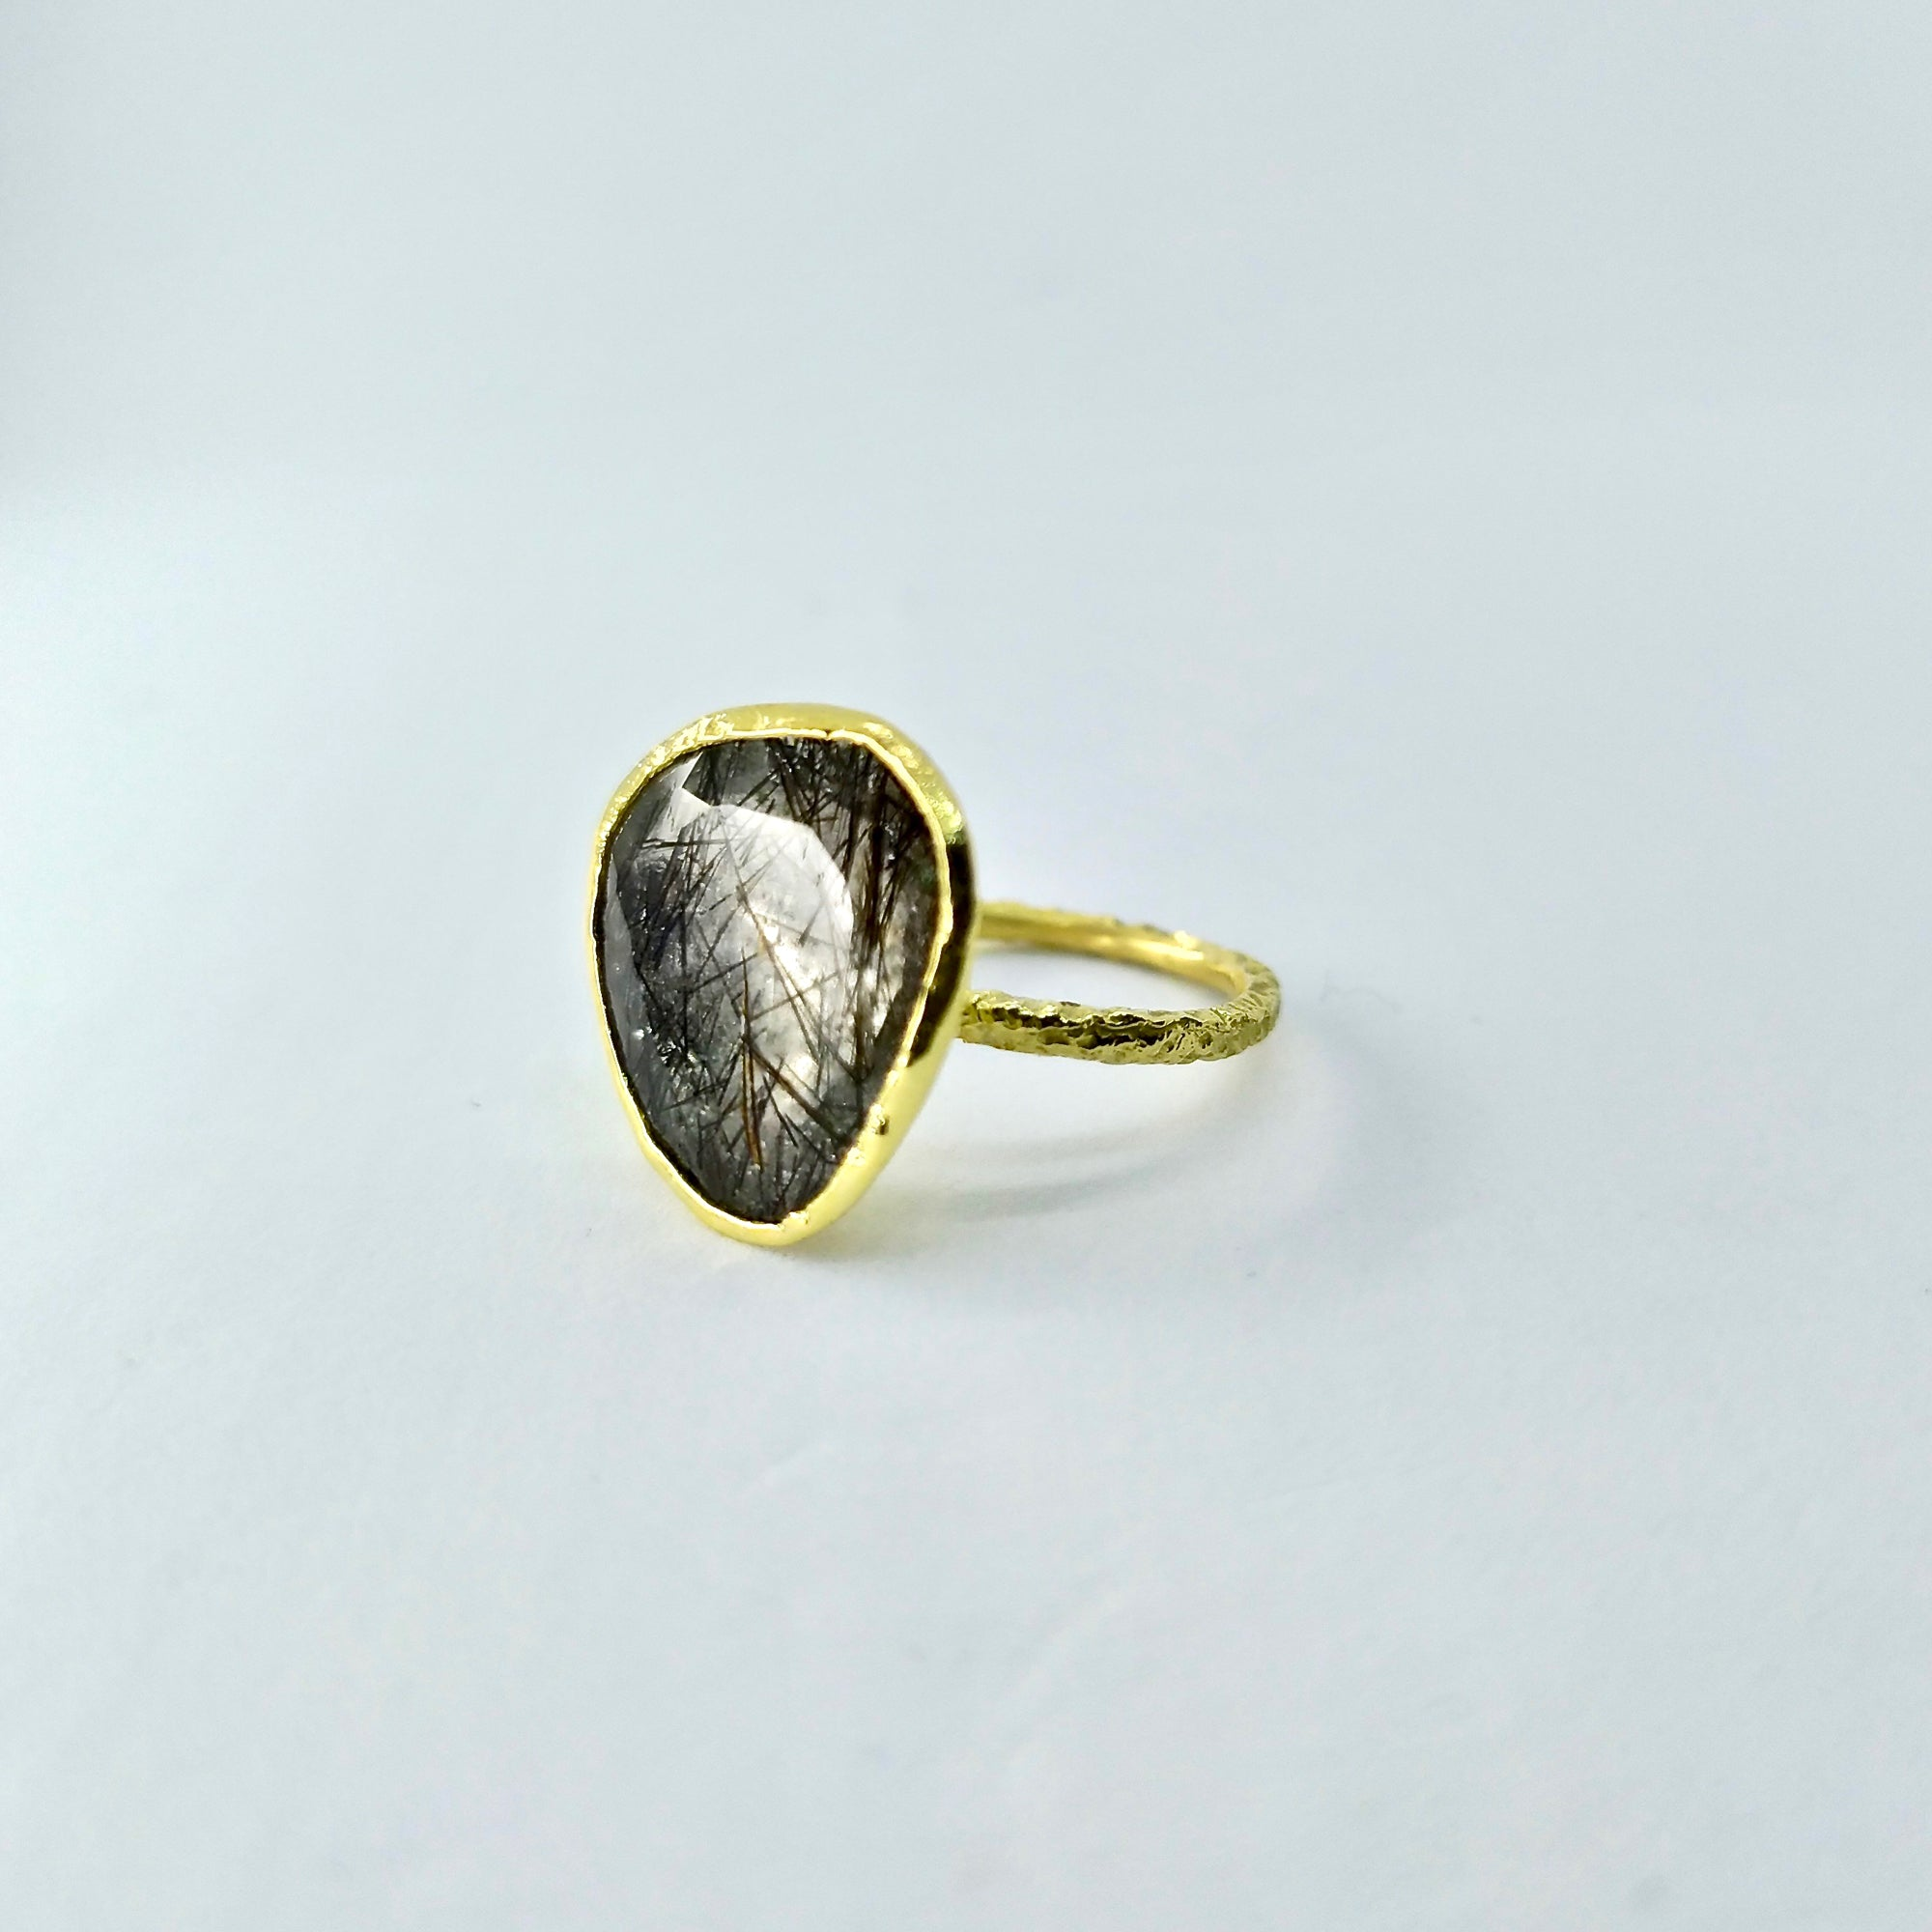 Tourmalinated Quartz Ring [Unique Piece] - Florentine Handmade Jewellery